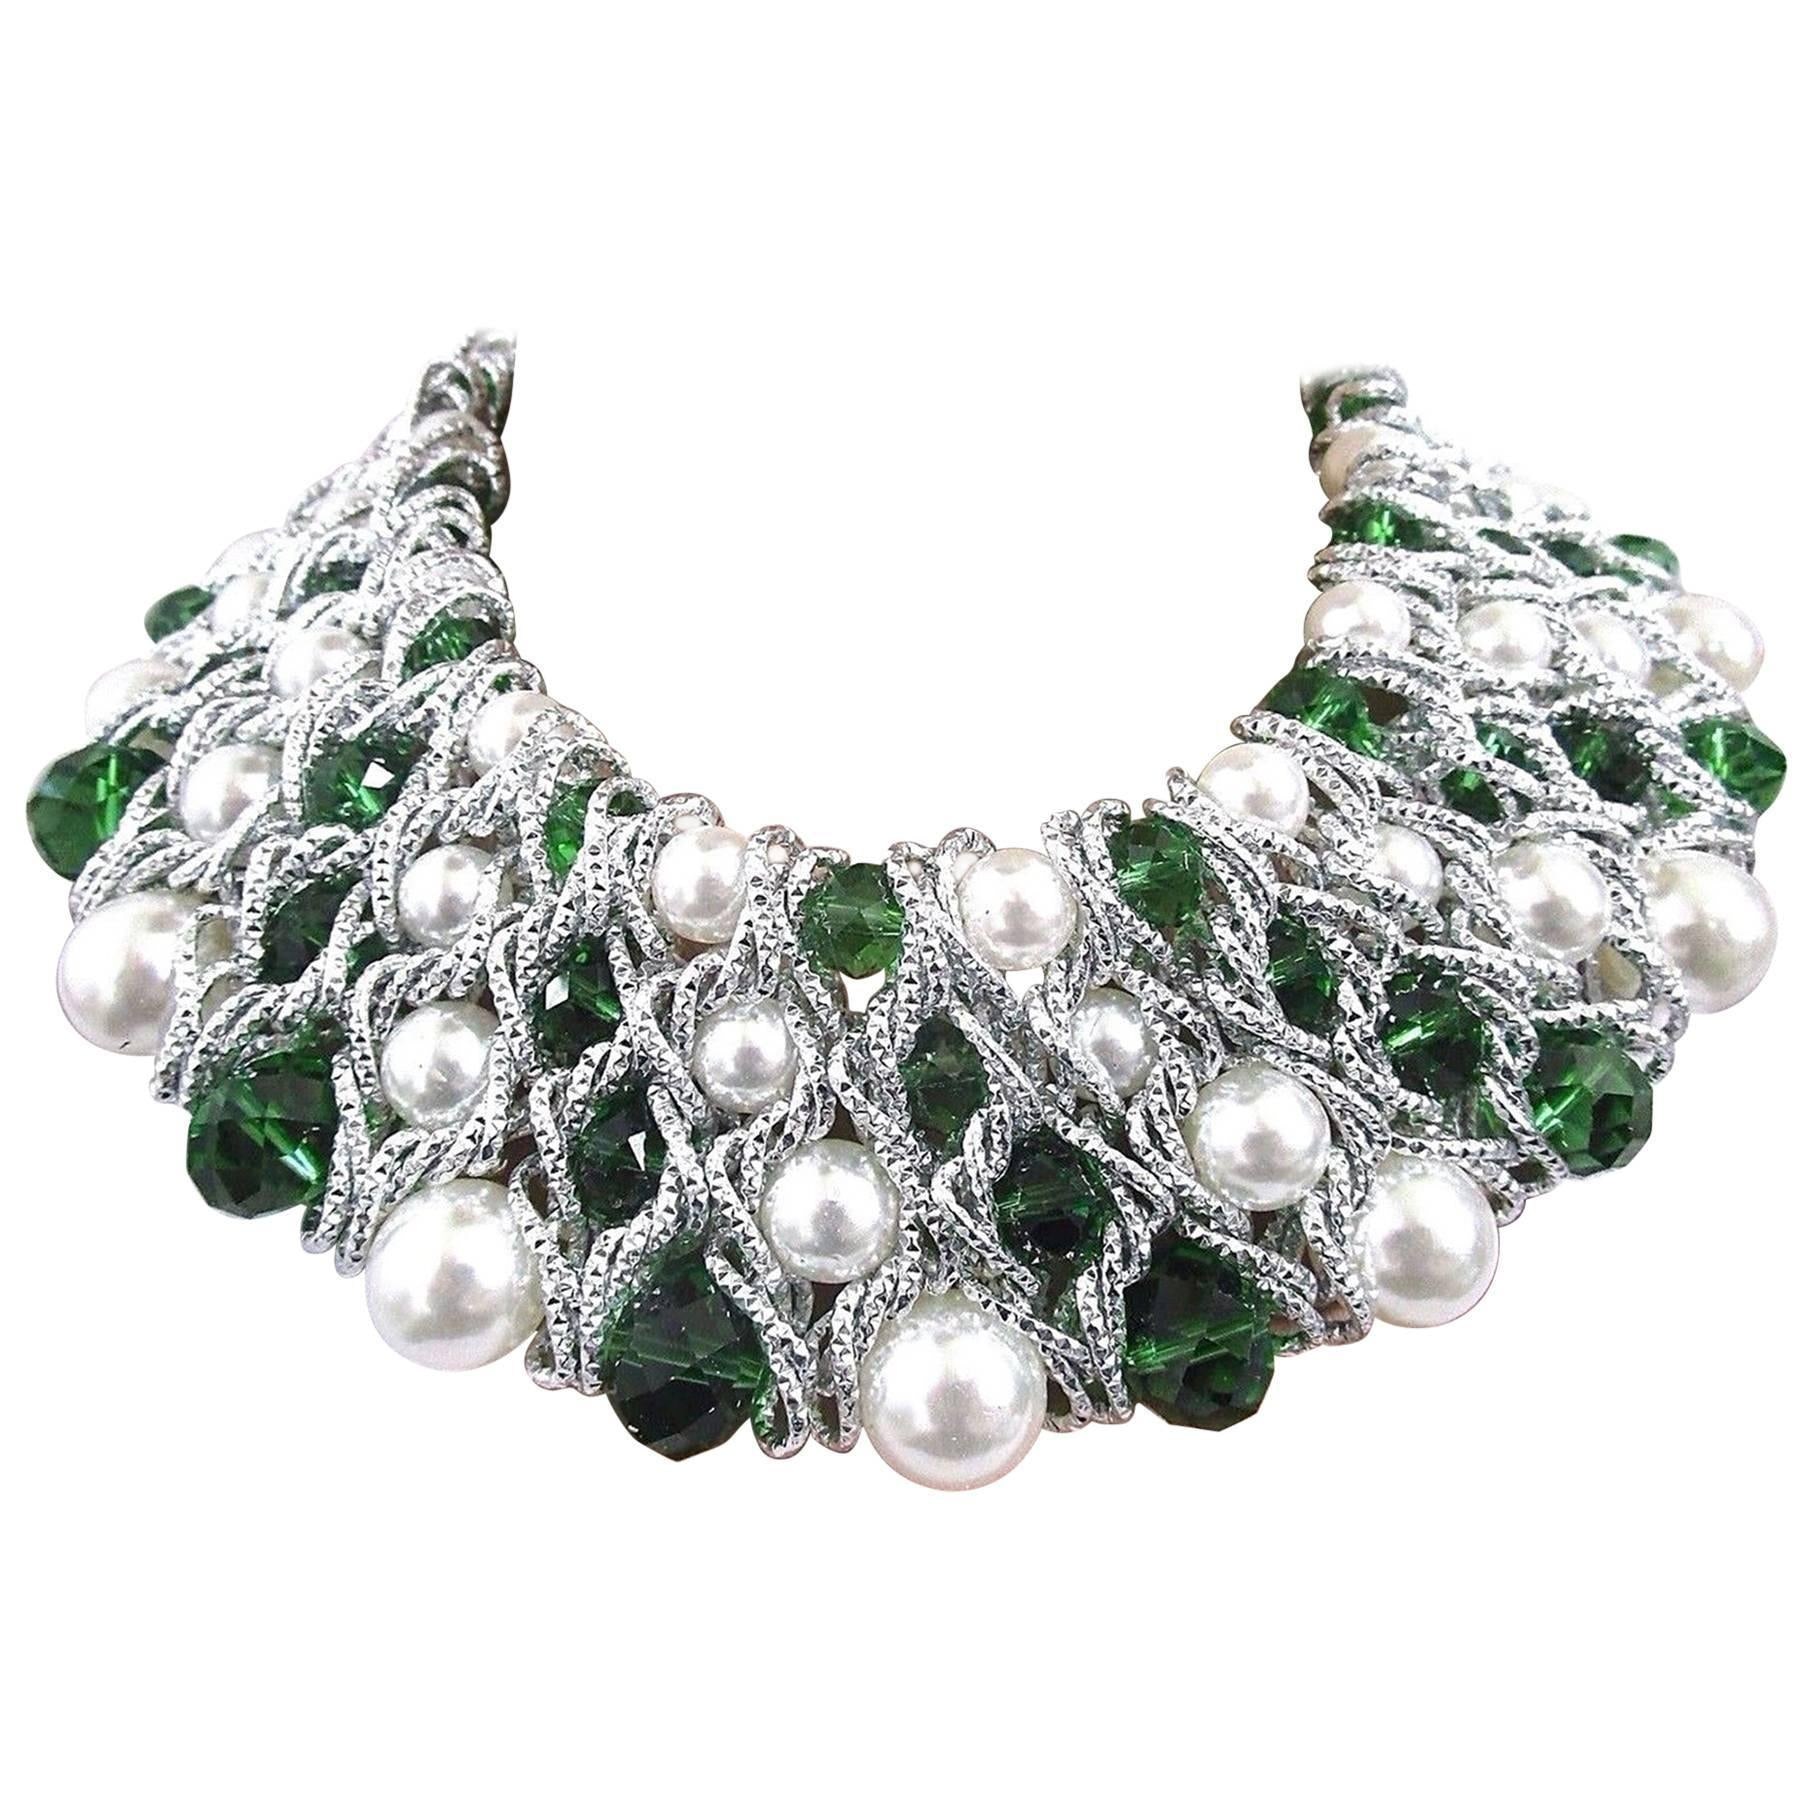 Fabulous Faux Pearl Emerald Green and Clear Crystal Caged Statement Necklace